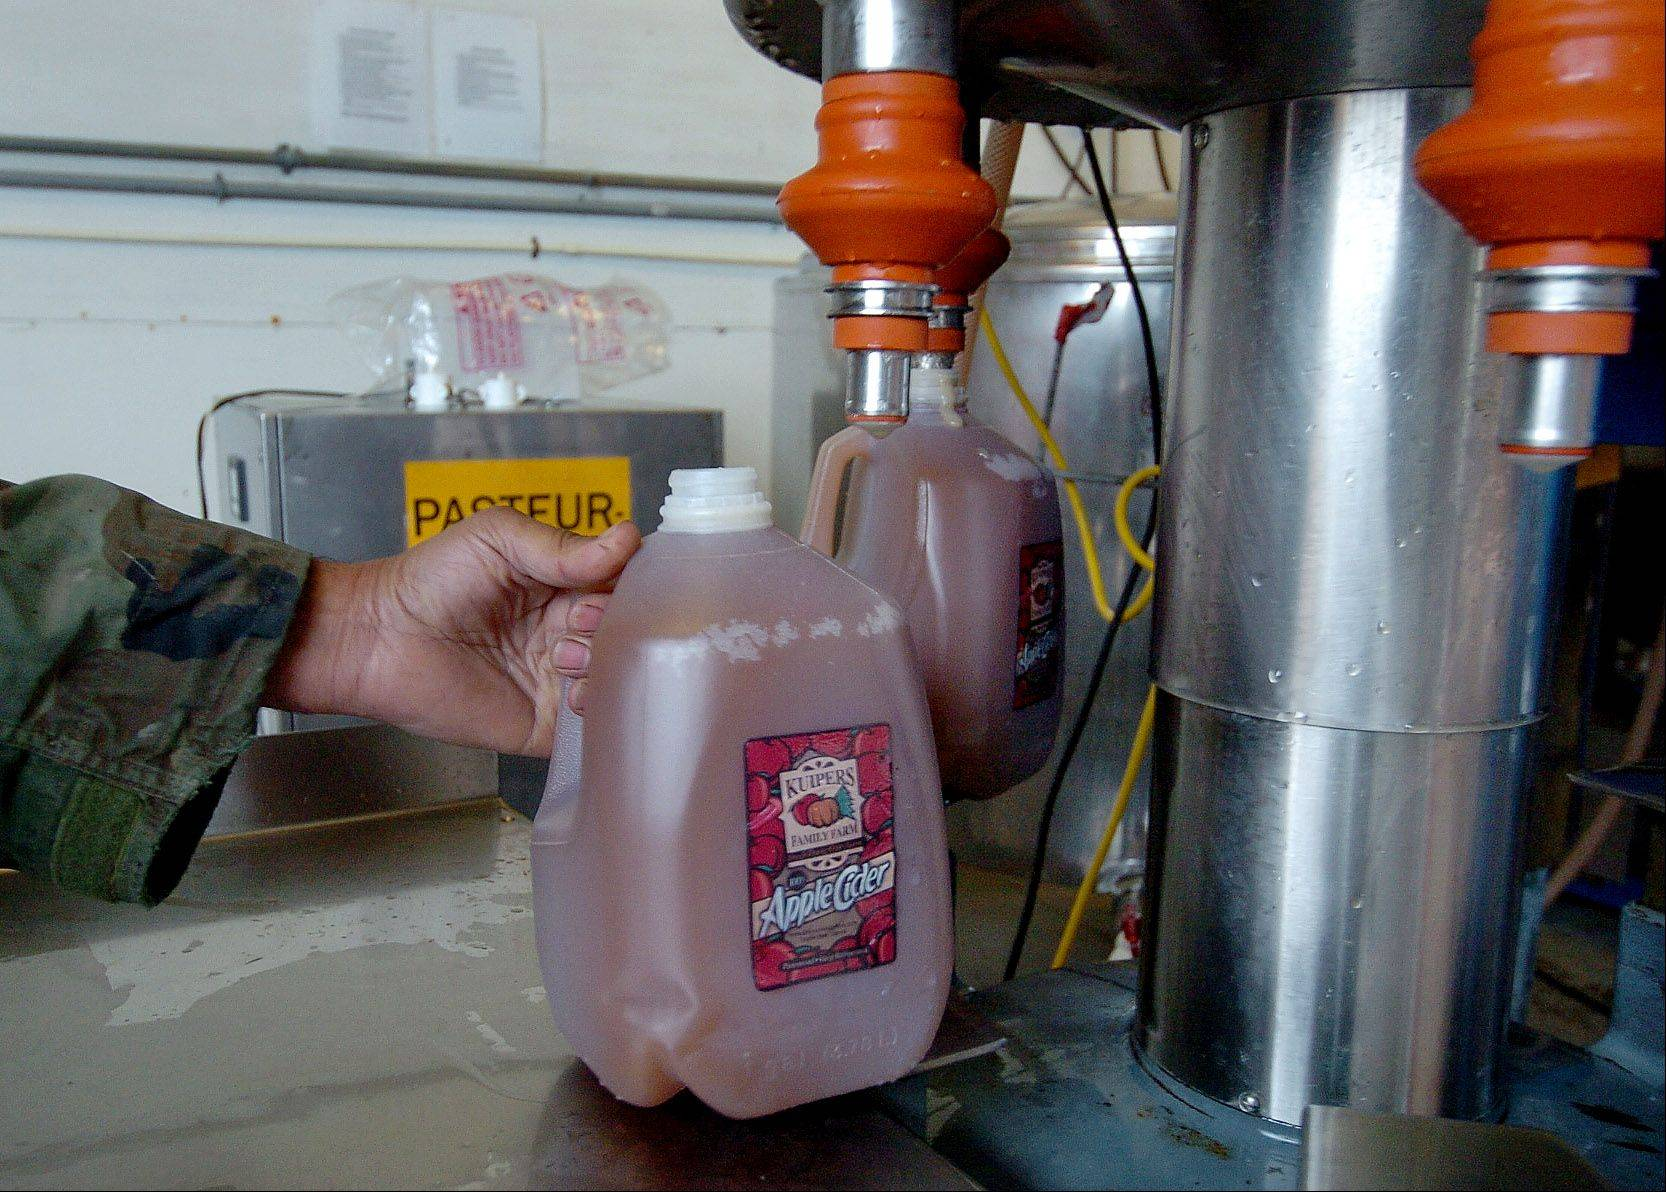 After undergoing a pasteurizing process, the cider is then bottled into gallon jugs.